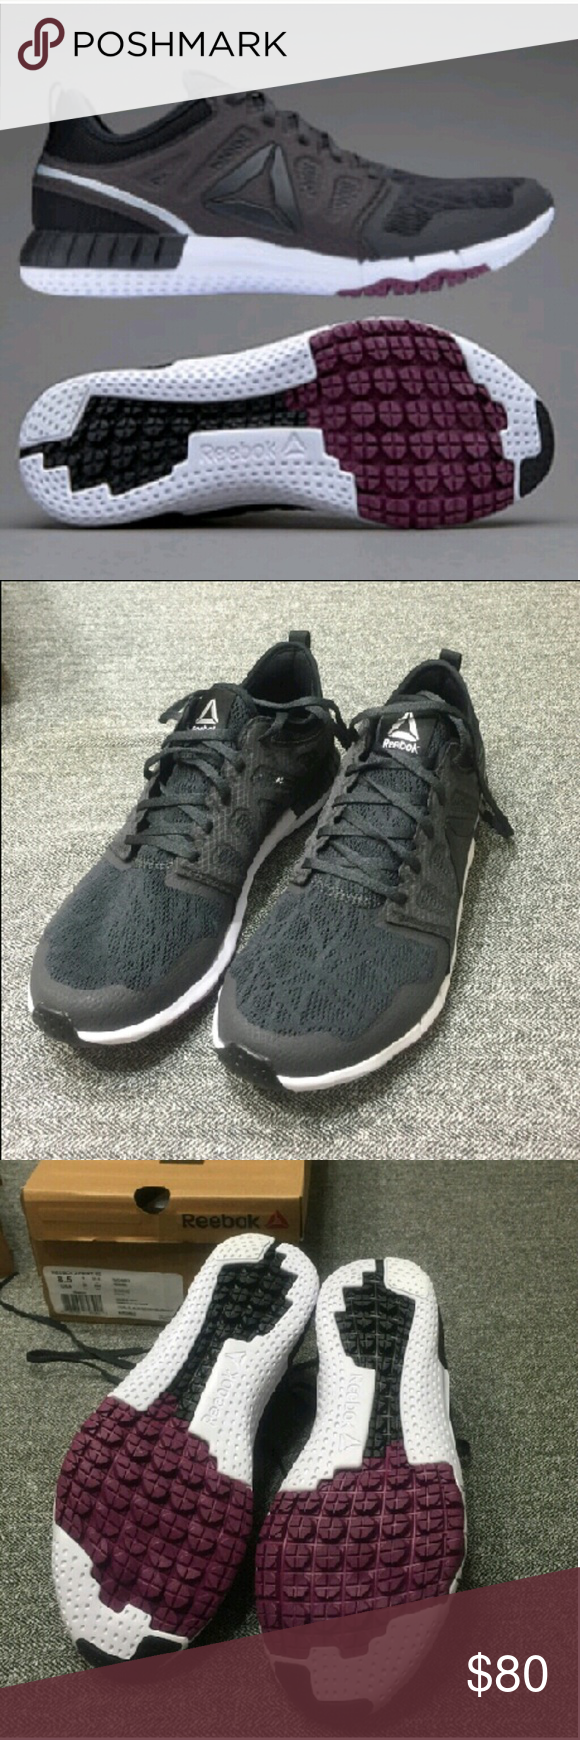 REEBOK ZPRINT 3D Running Shoes NIB!!!! Brand new running shoes. Color:coal/black/berry/silver/white. Reebok Shoes Athletic Shoes